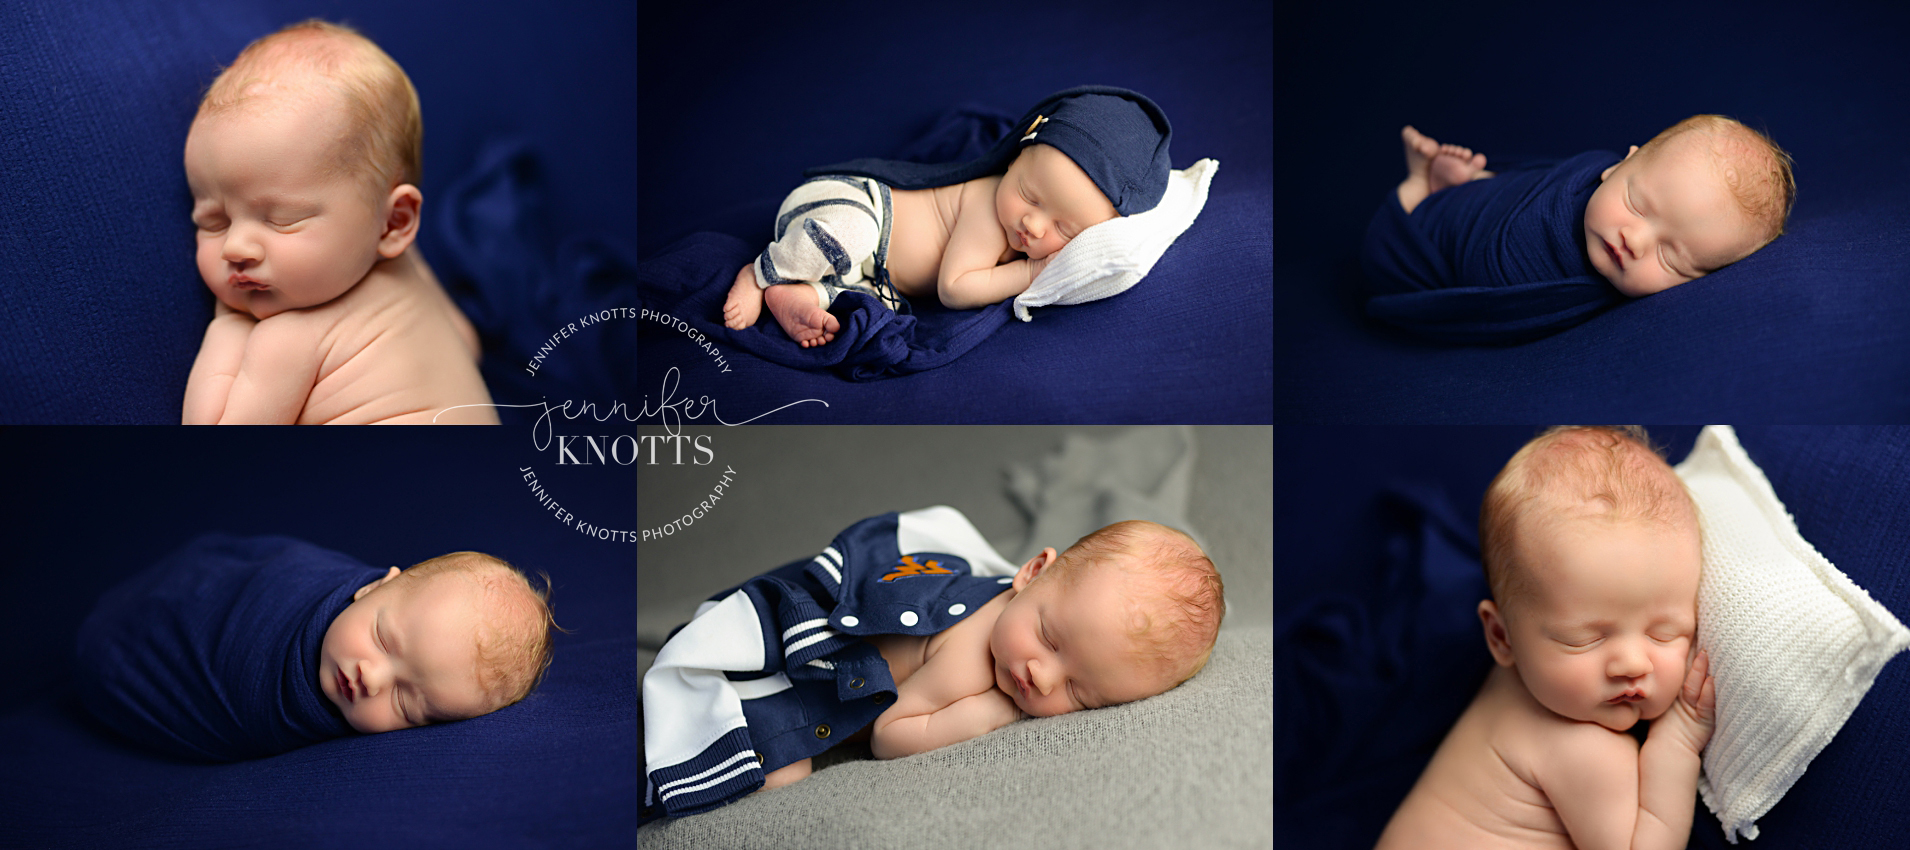 newborn baby boy sleeps on navy fabric during Wilmington newborn session